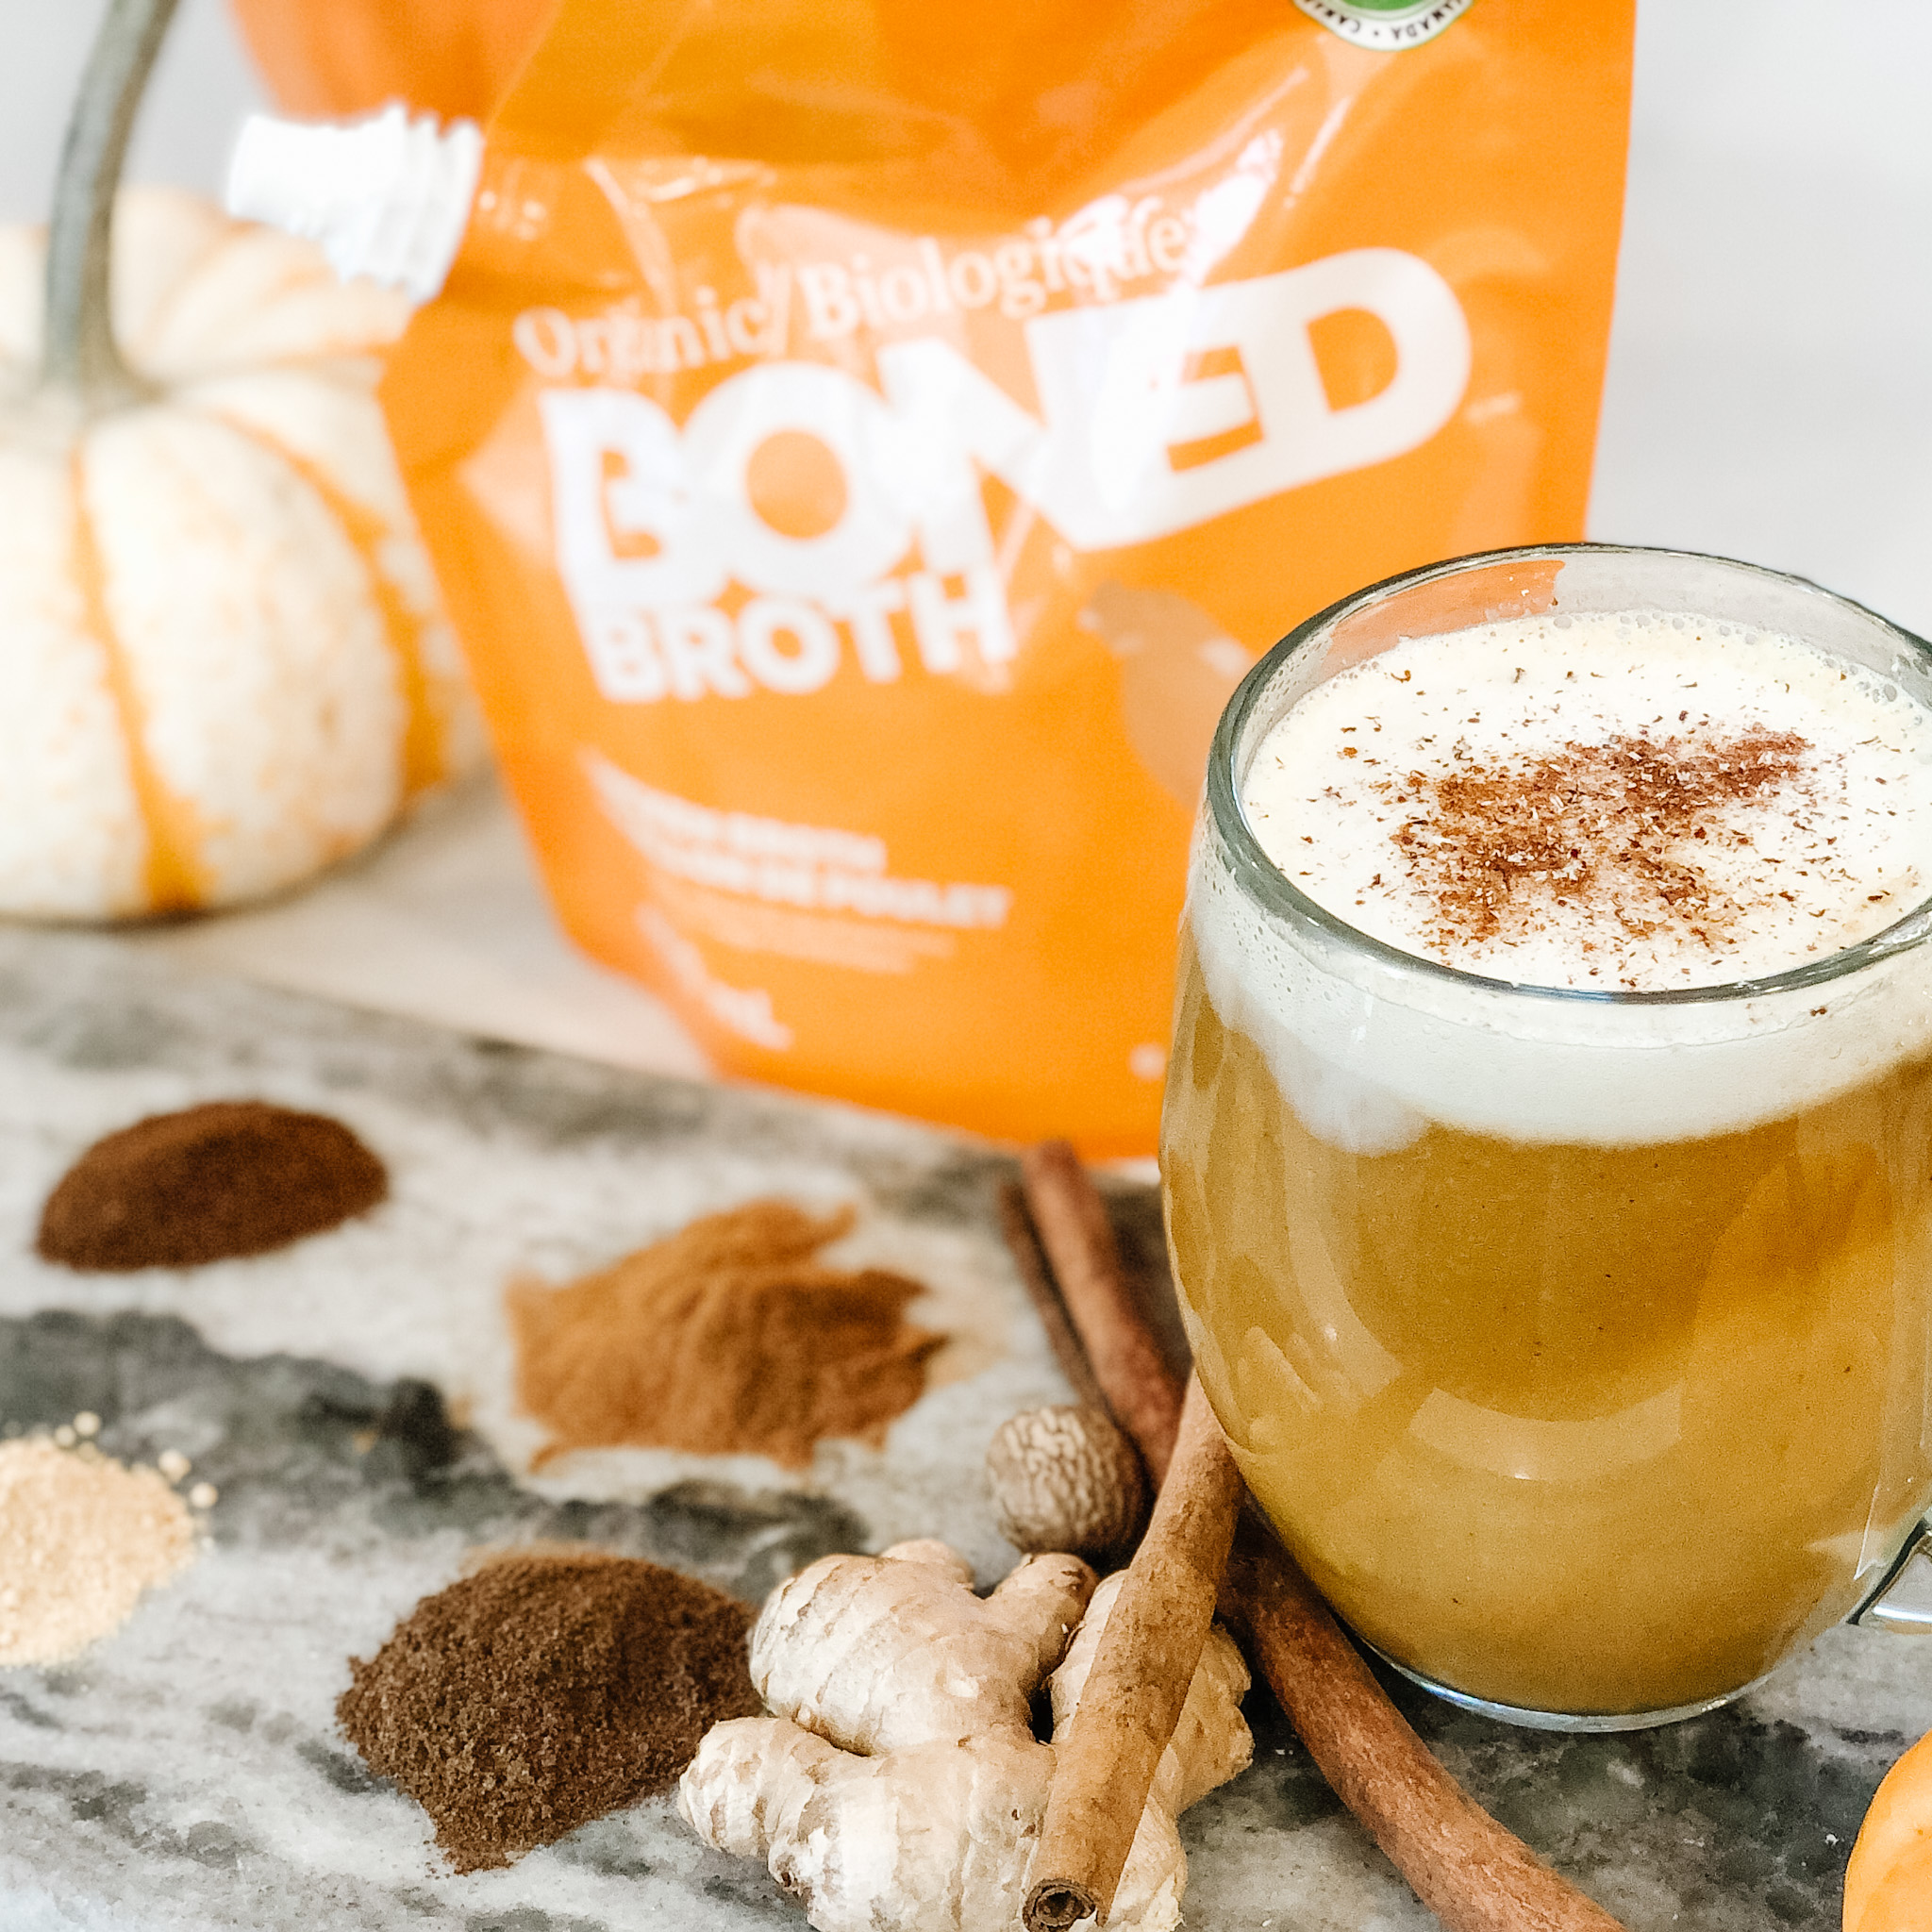 BONED Broth Pumpkin Spice Latte